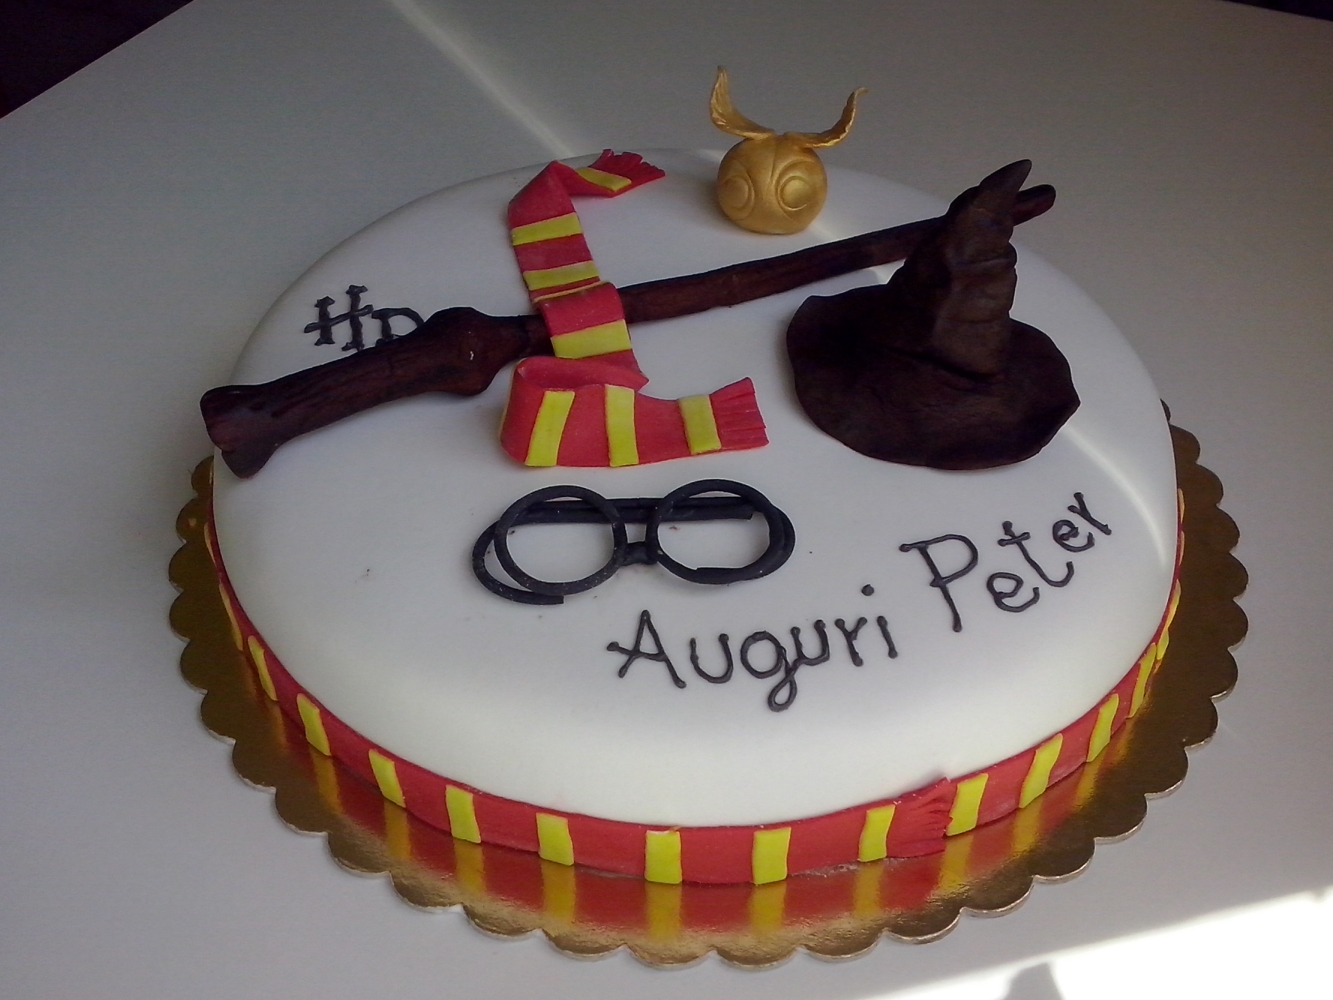 harry potter torte harry potter party teil 3 stempelspass il paradiso delle torte la torta di. Black Bedroom Furniture Sets. Home Design Ideas